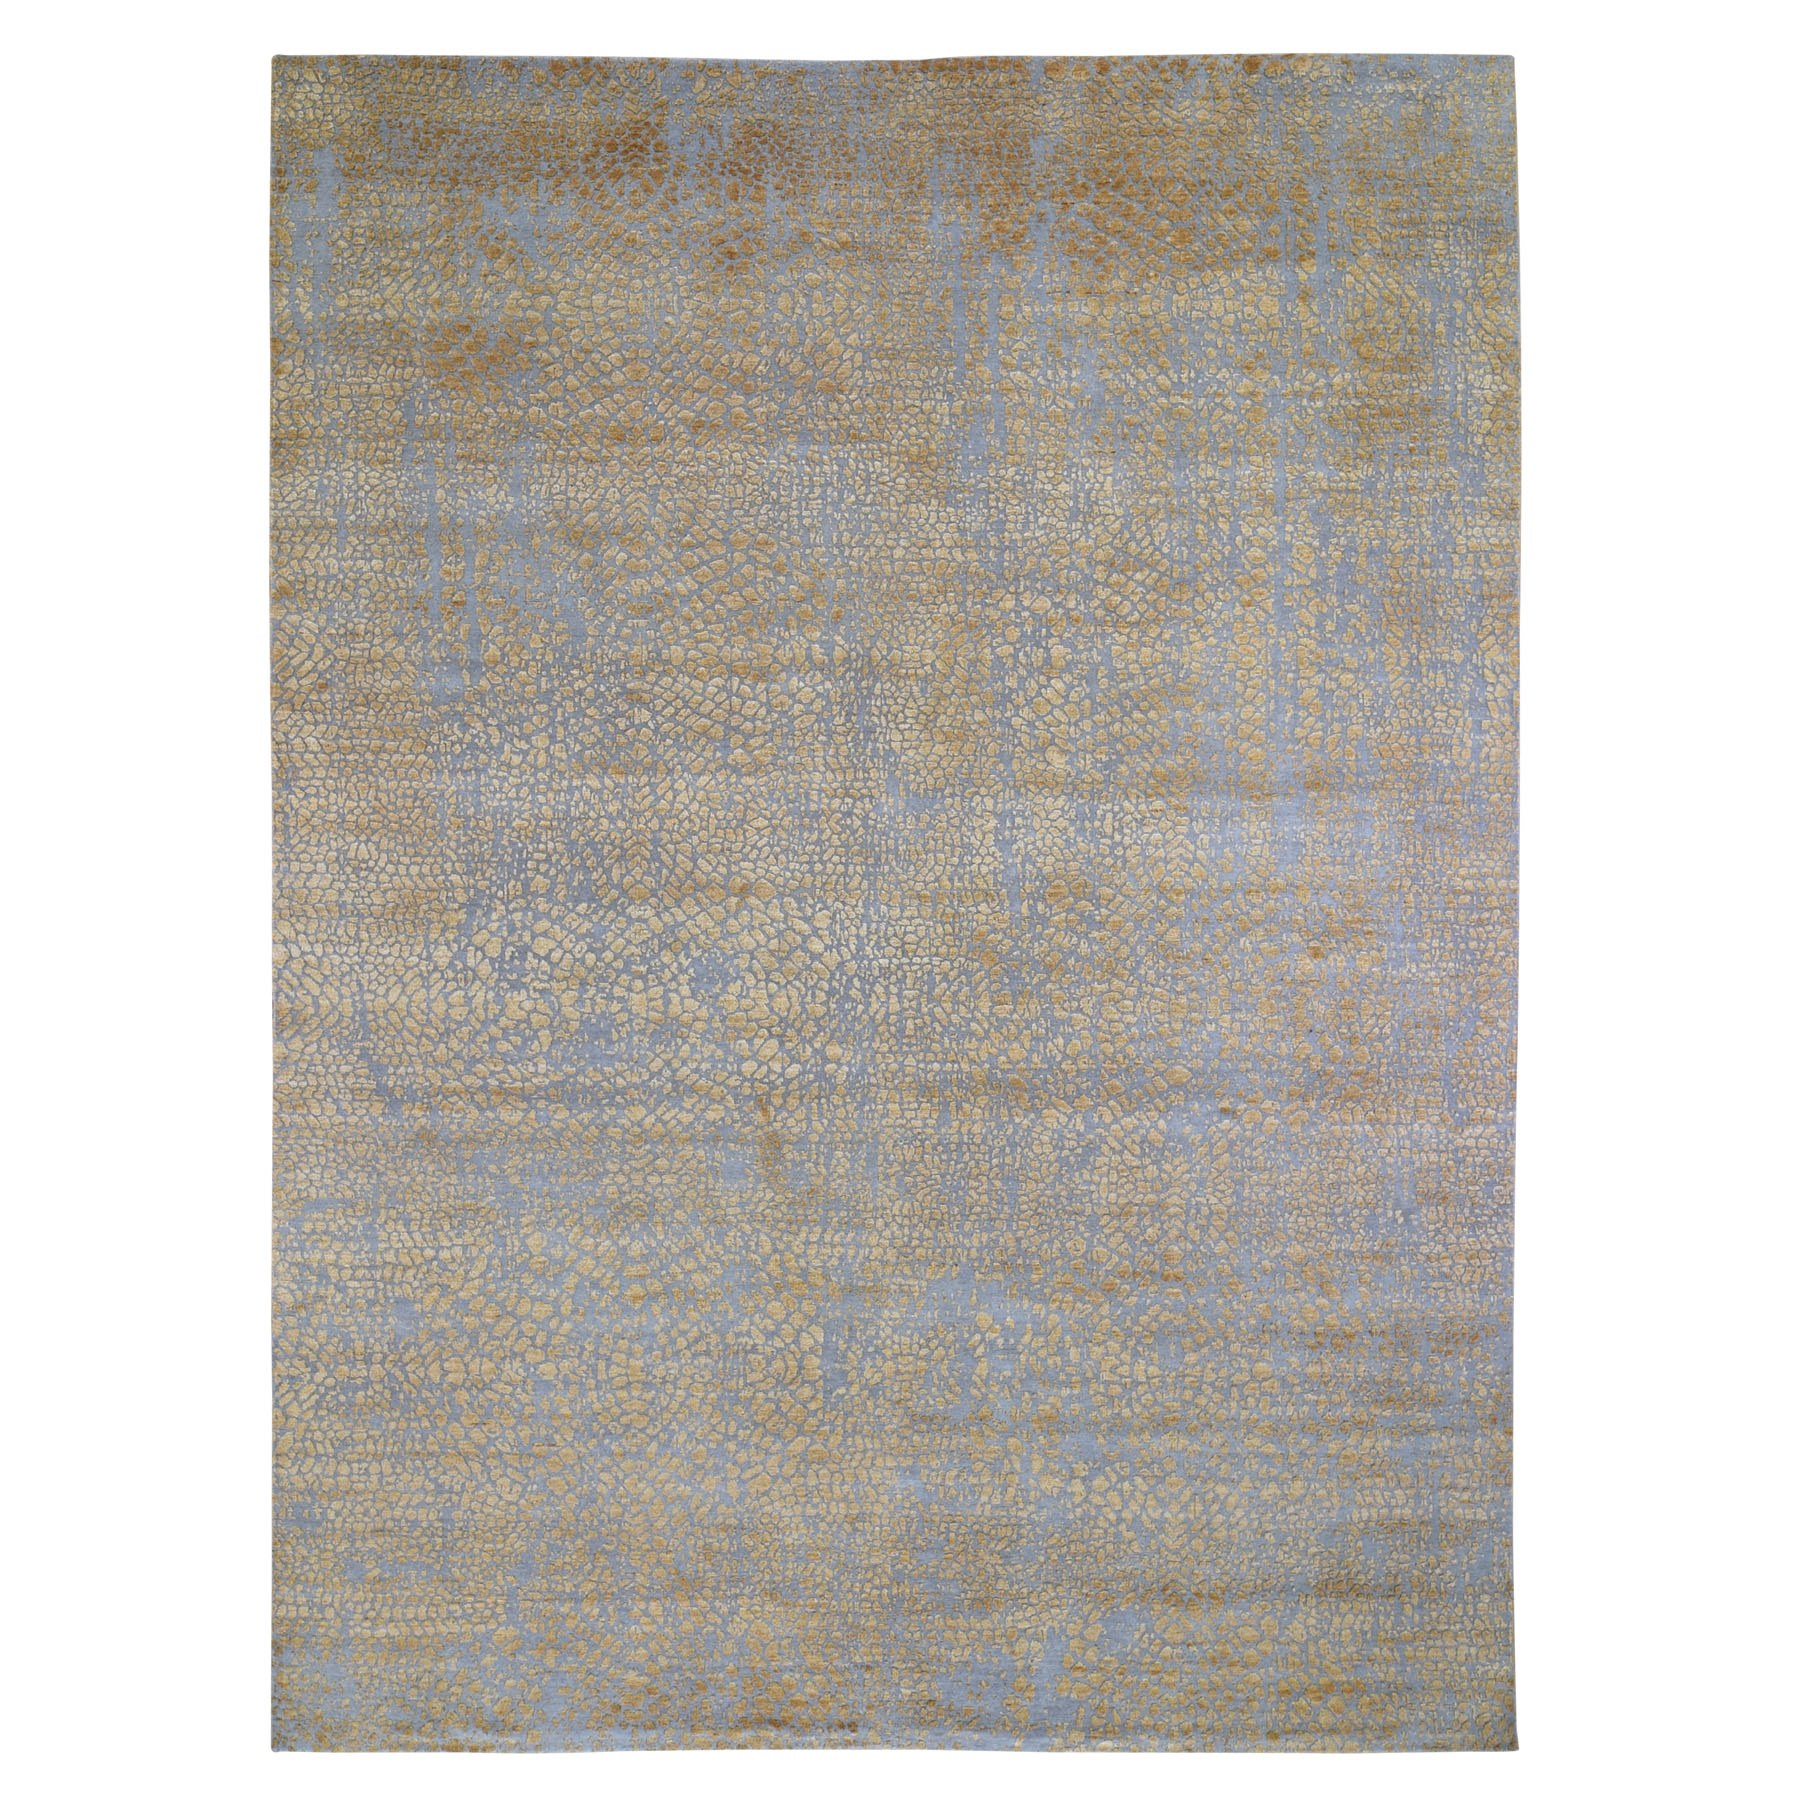 "8'10""x12'1"" Gold Tone On Tone THE DOTS Wool And Silk Hand Woven Oriental Rug"